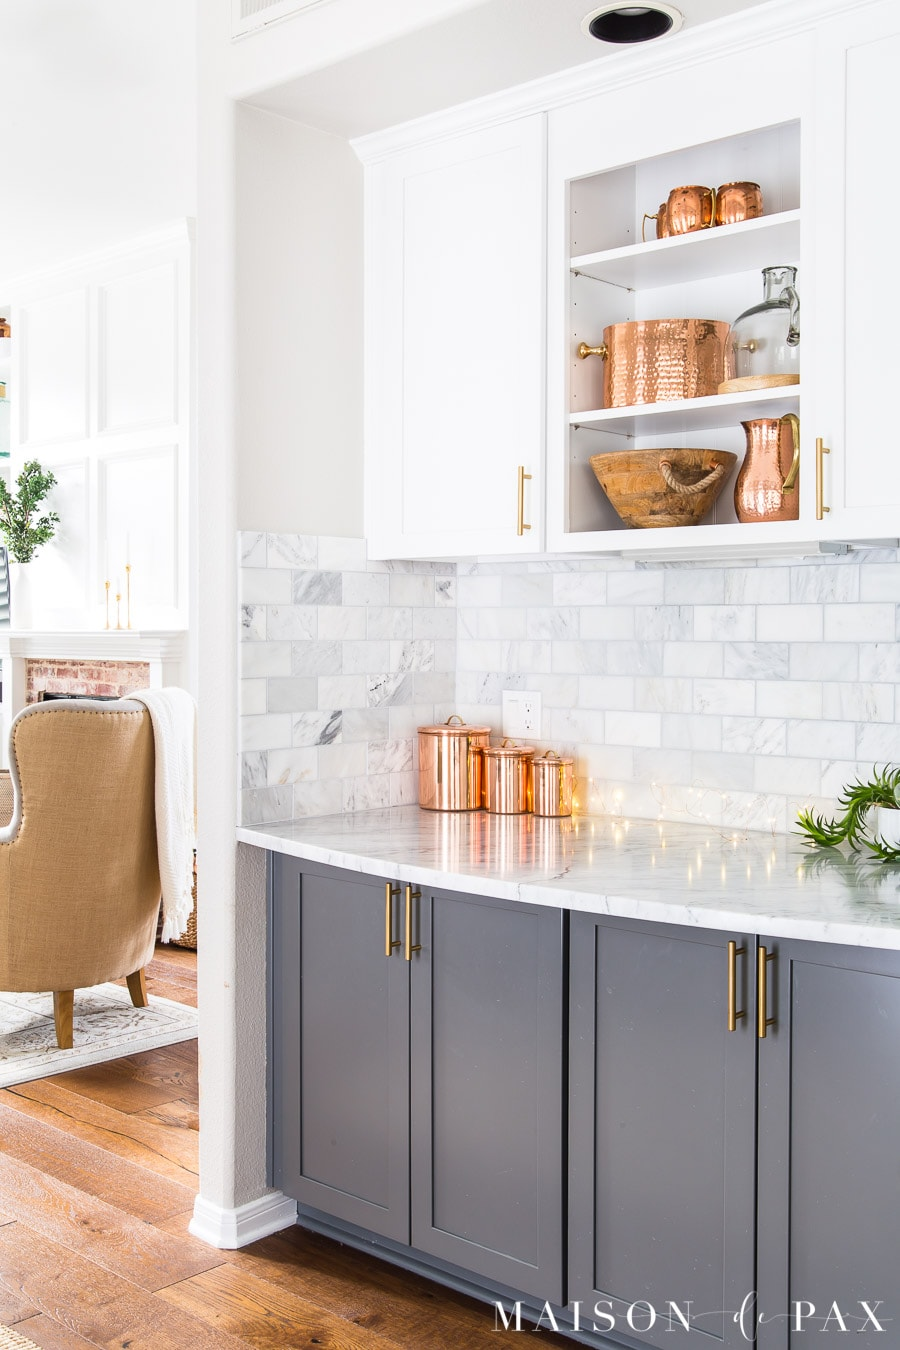 Agreeable Gray walls with white and gray cabinets and cararra marble tile and countertops | Maison de Pax